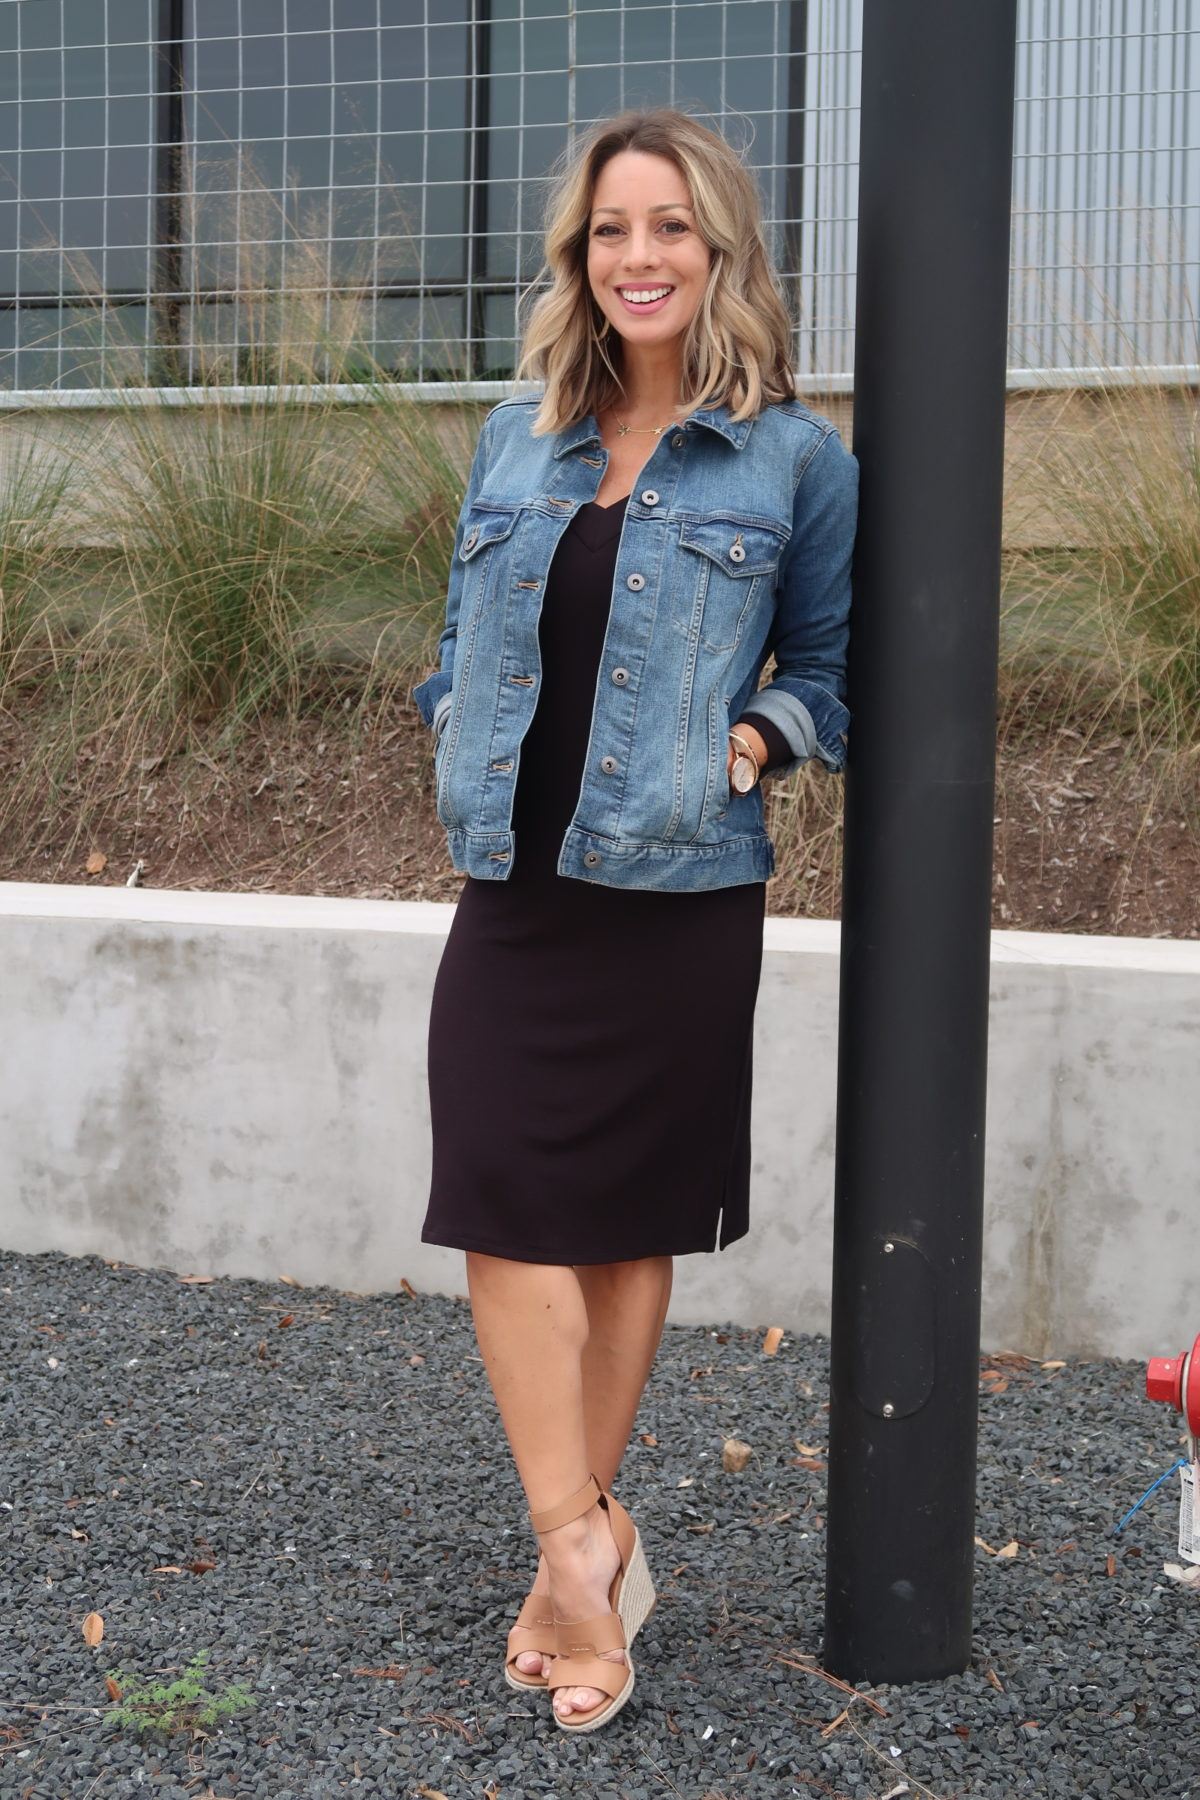 Jean Jacket, Black Dress, Wedge Sandals